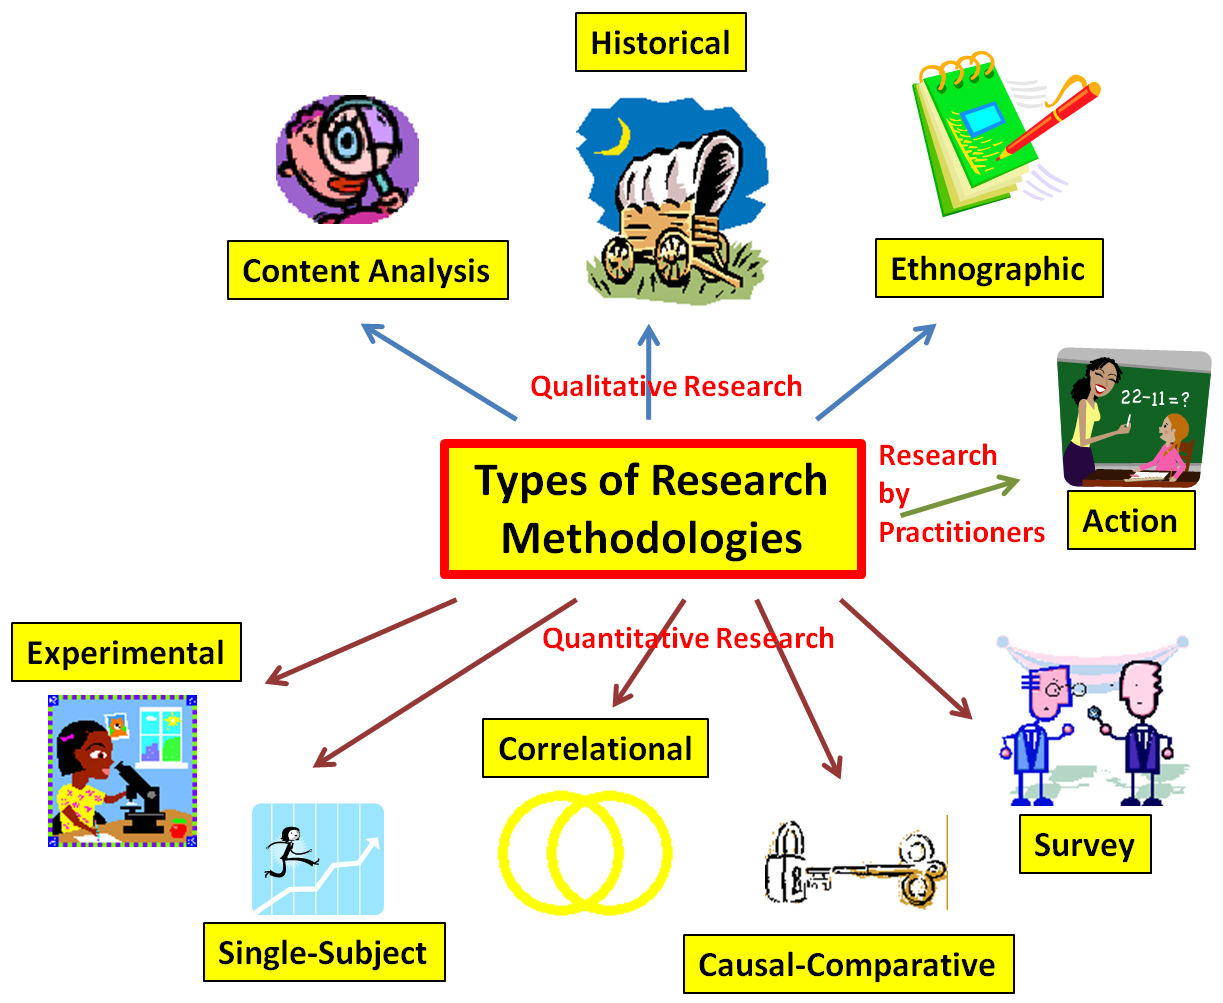 Research Methodology concept map